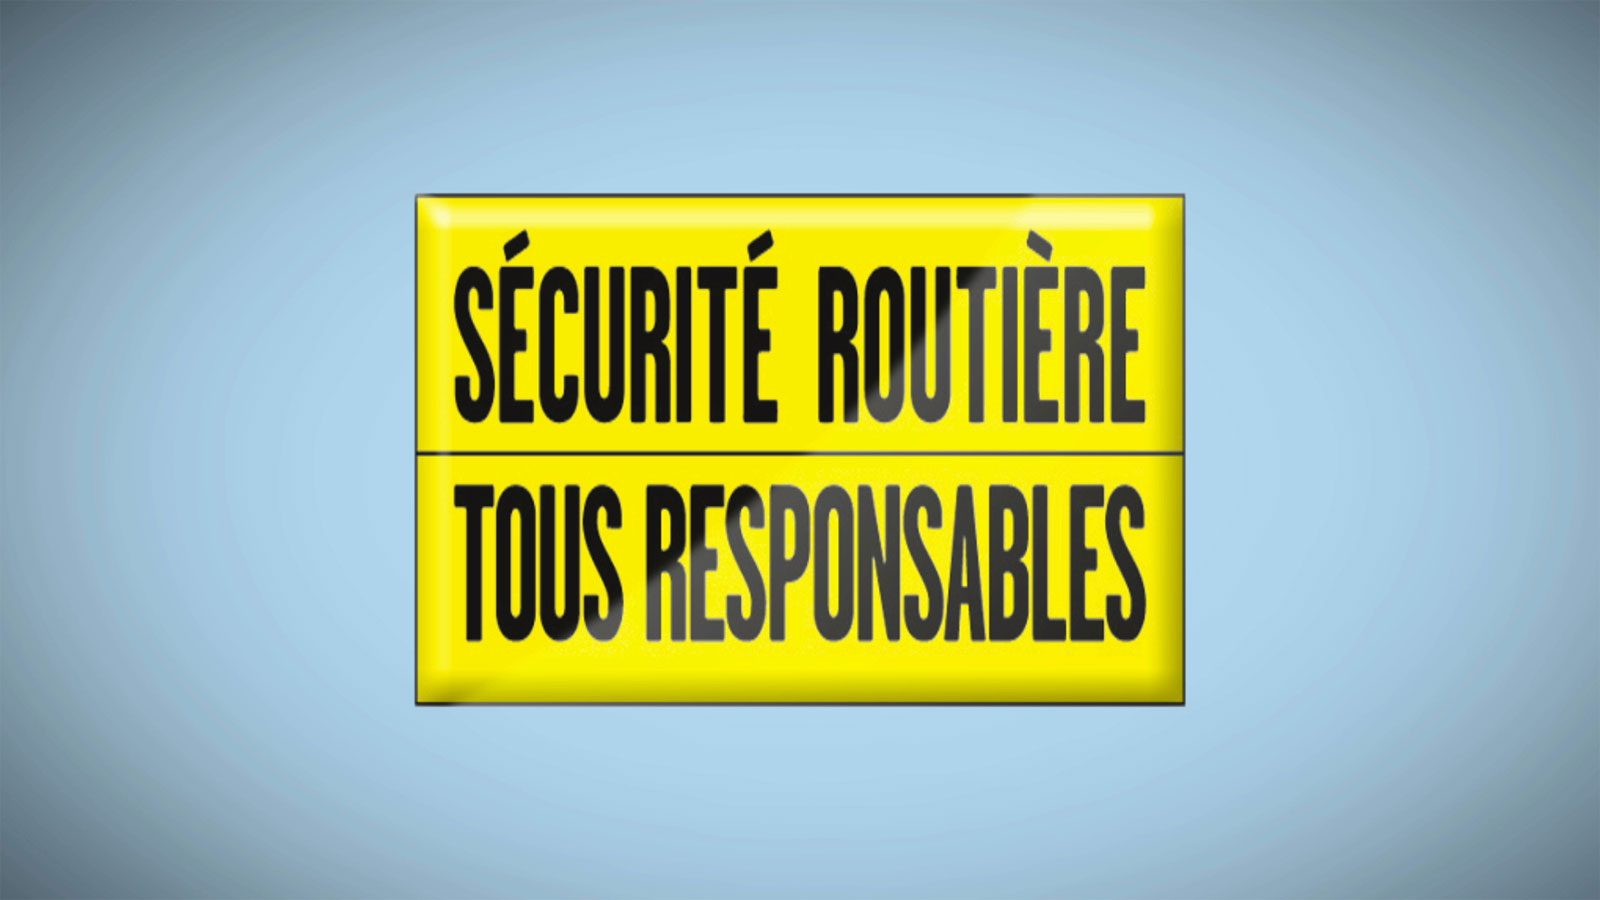 securite-routiere-moselle-1.jpg